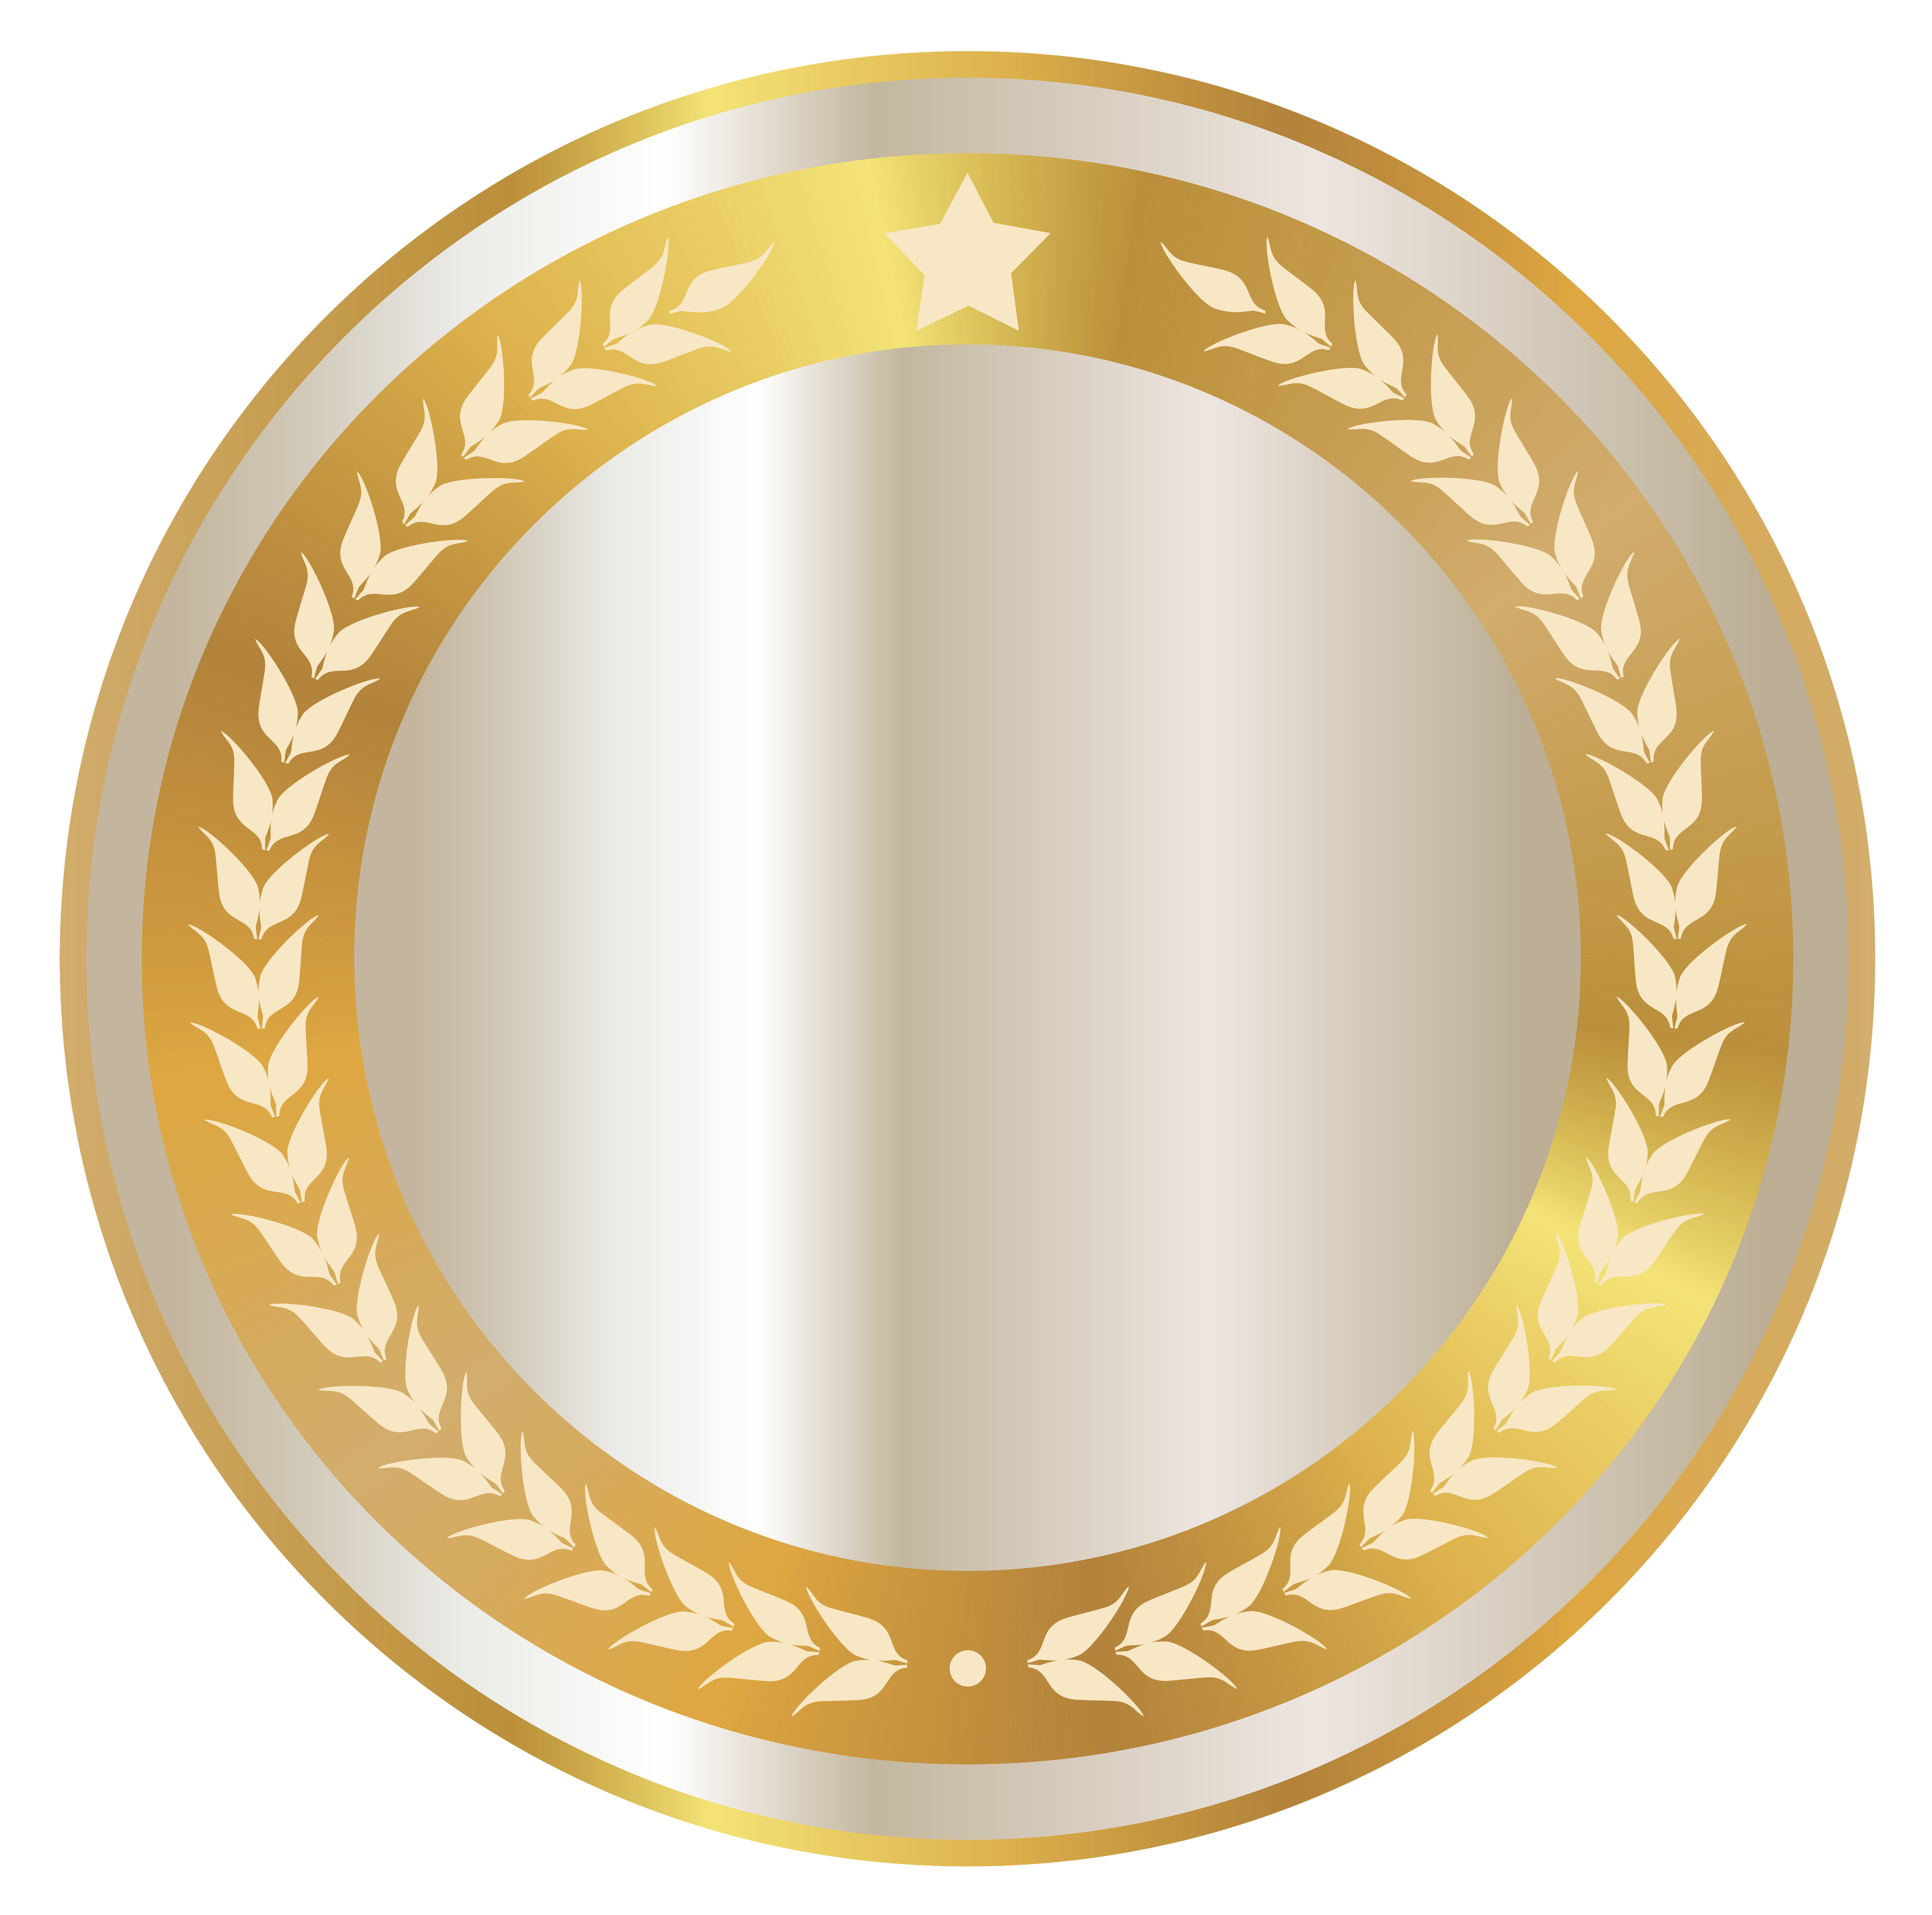 Golden and white png. Seal clipart happy